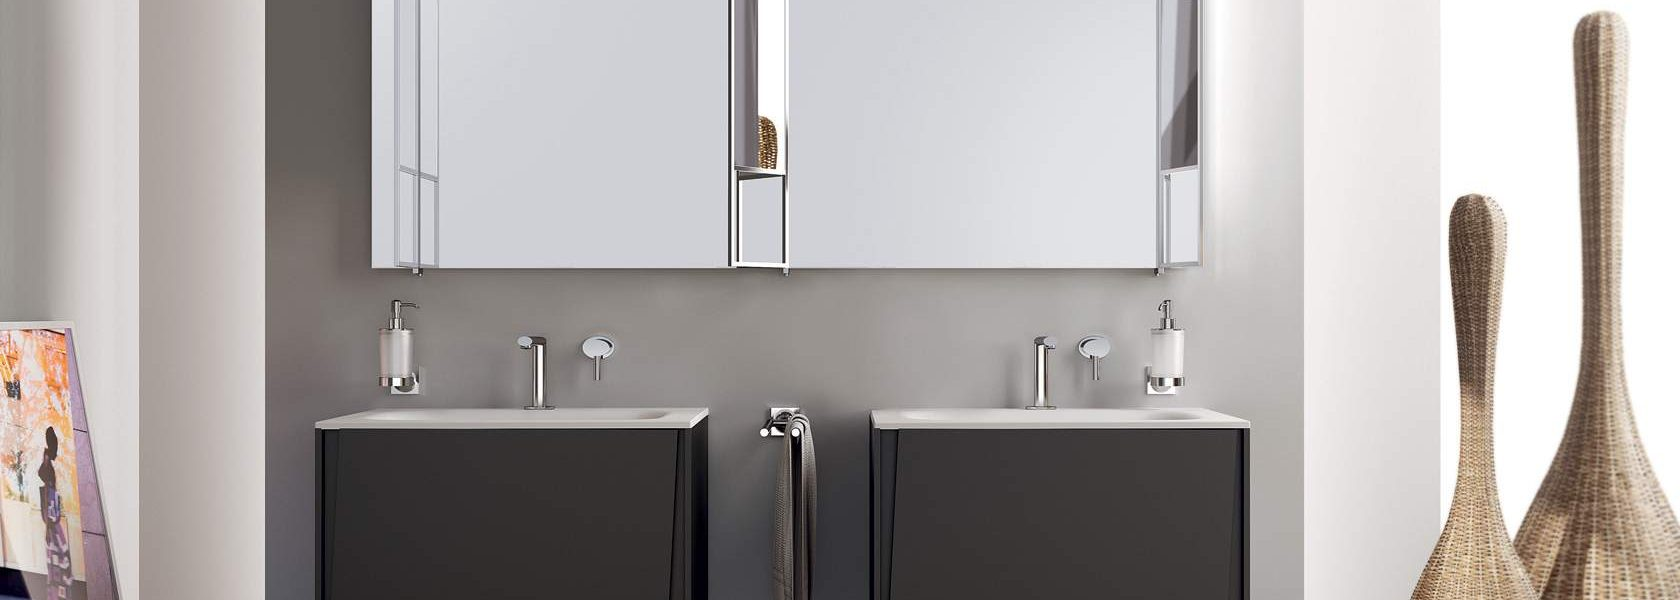 Stunning Outlet Del Bagno Rubiera Images - bery.us - bery.us